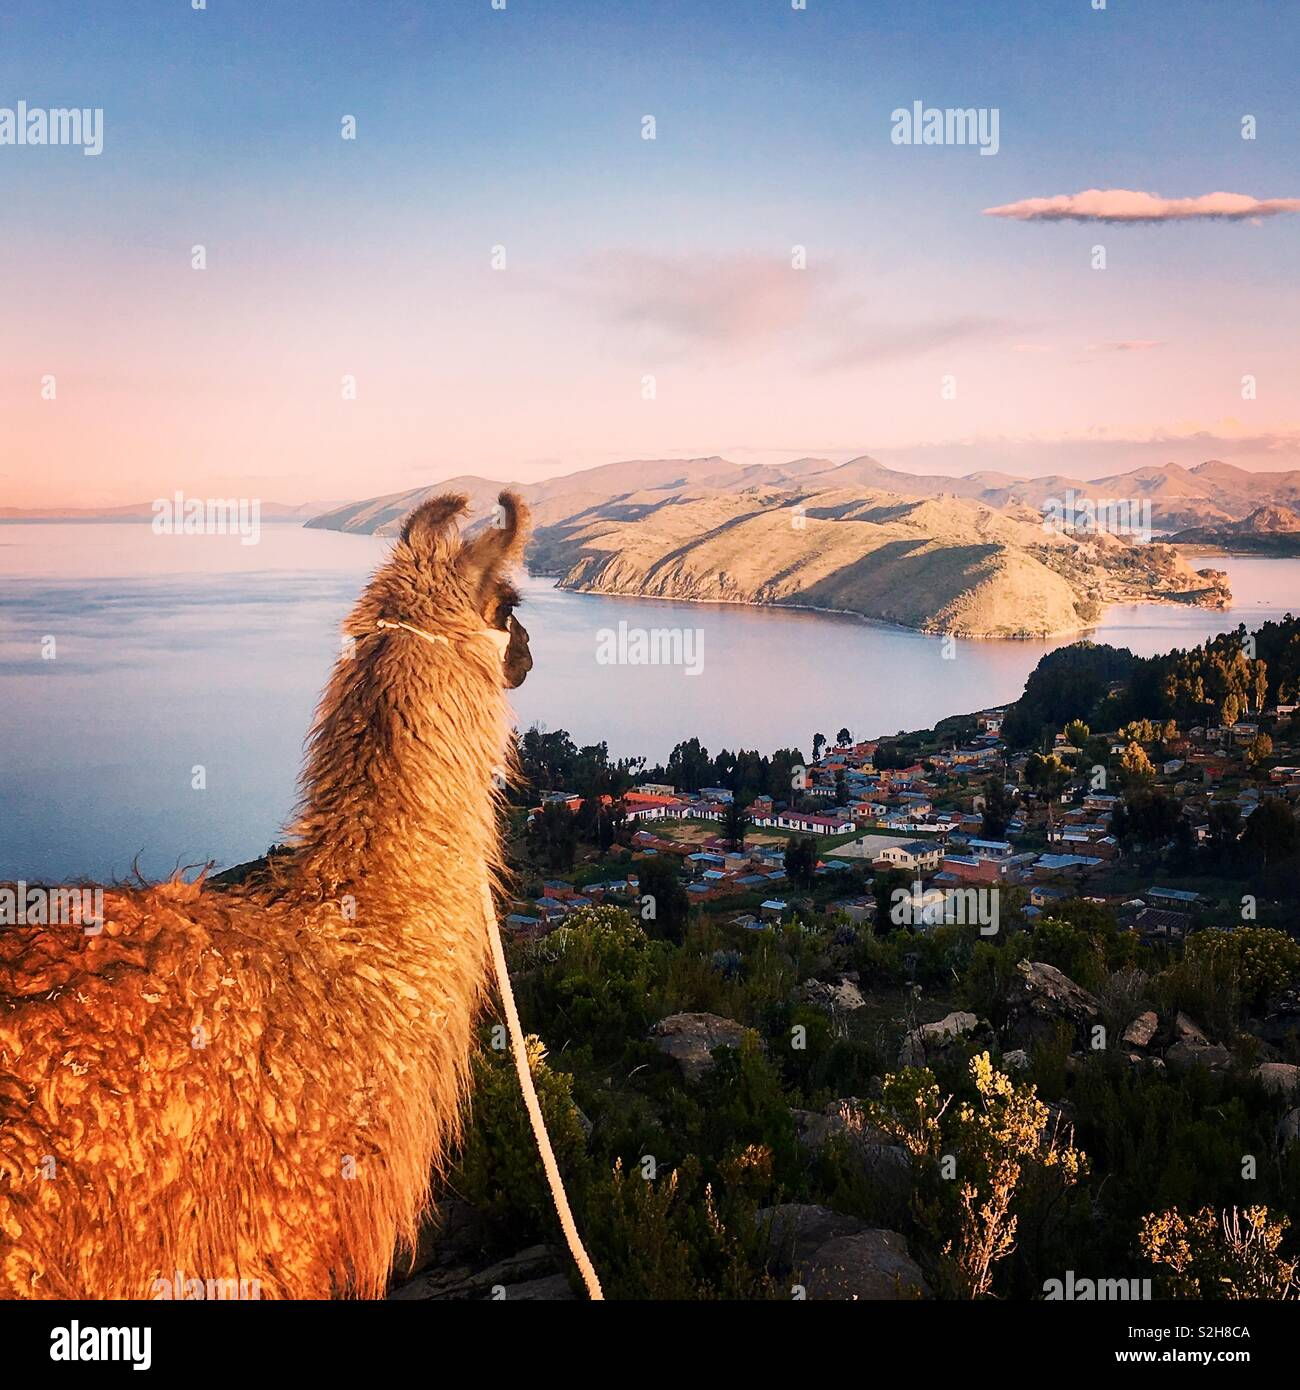 Llama at Isla del Sol overlooking lake Titicaca, Bolivia - Stock Image